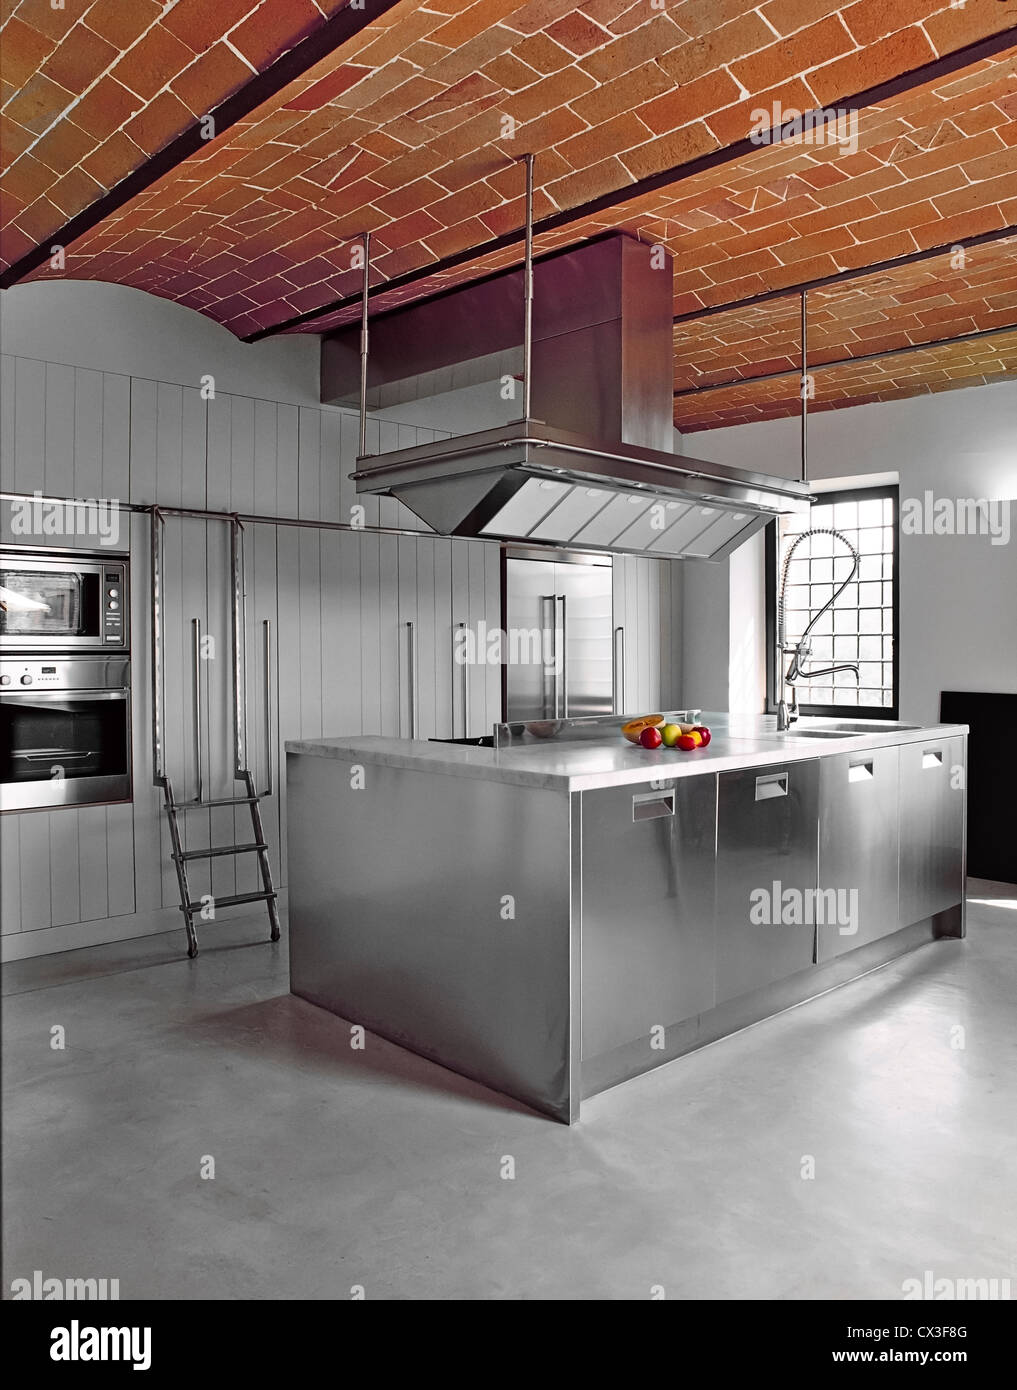 Concrete Floor Kitchen